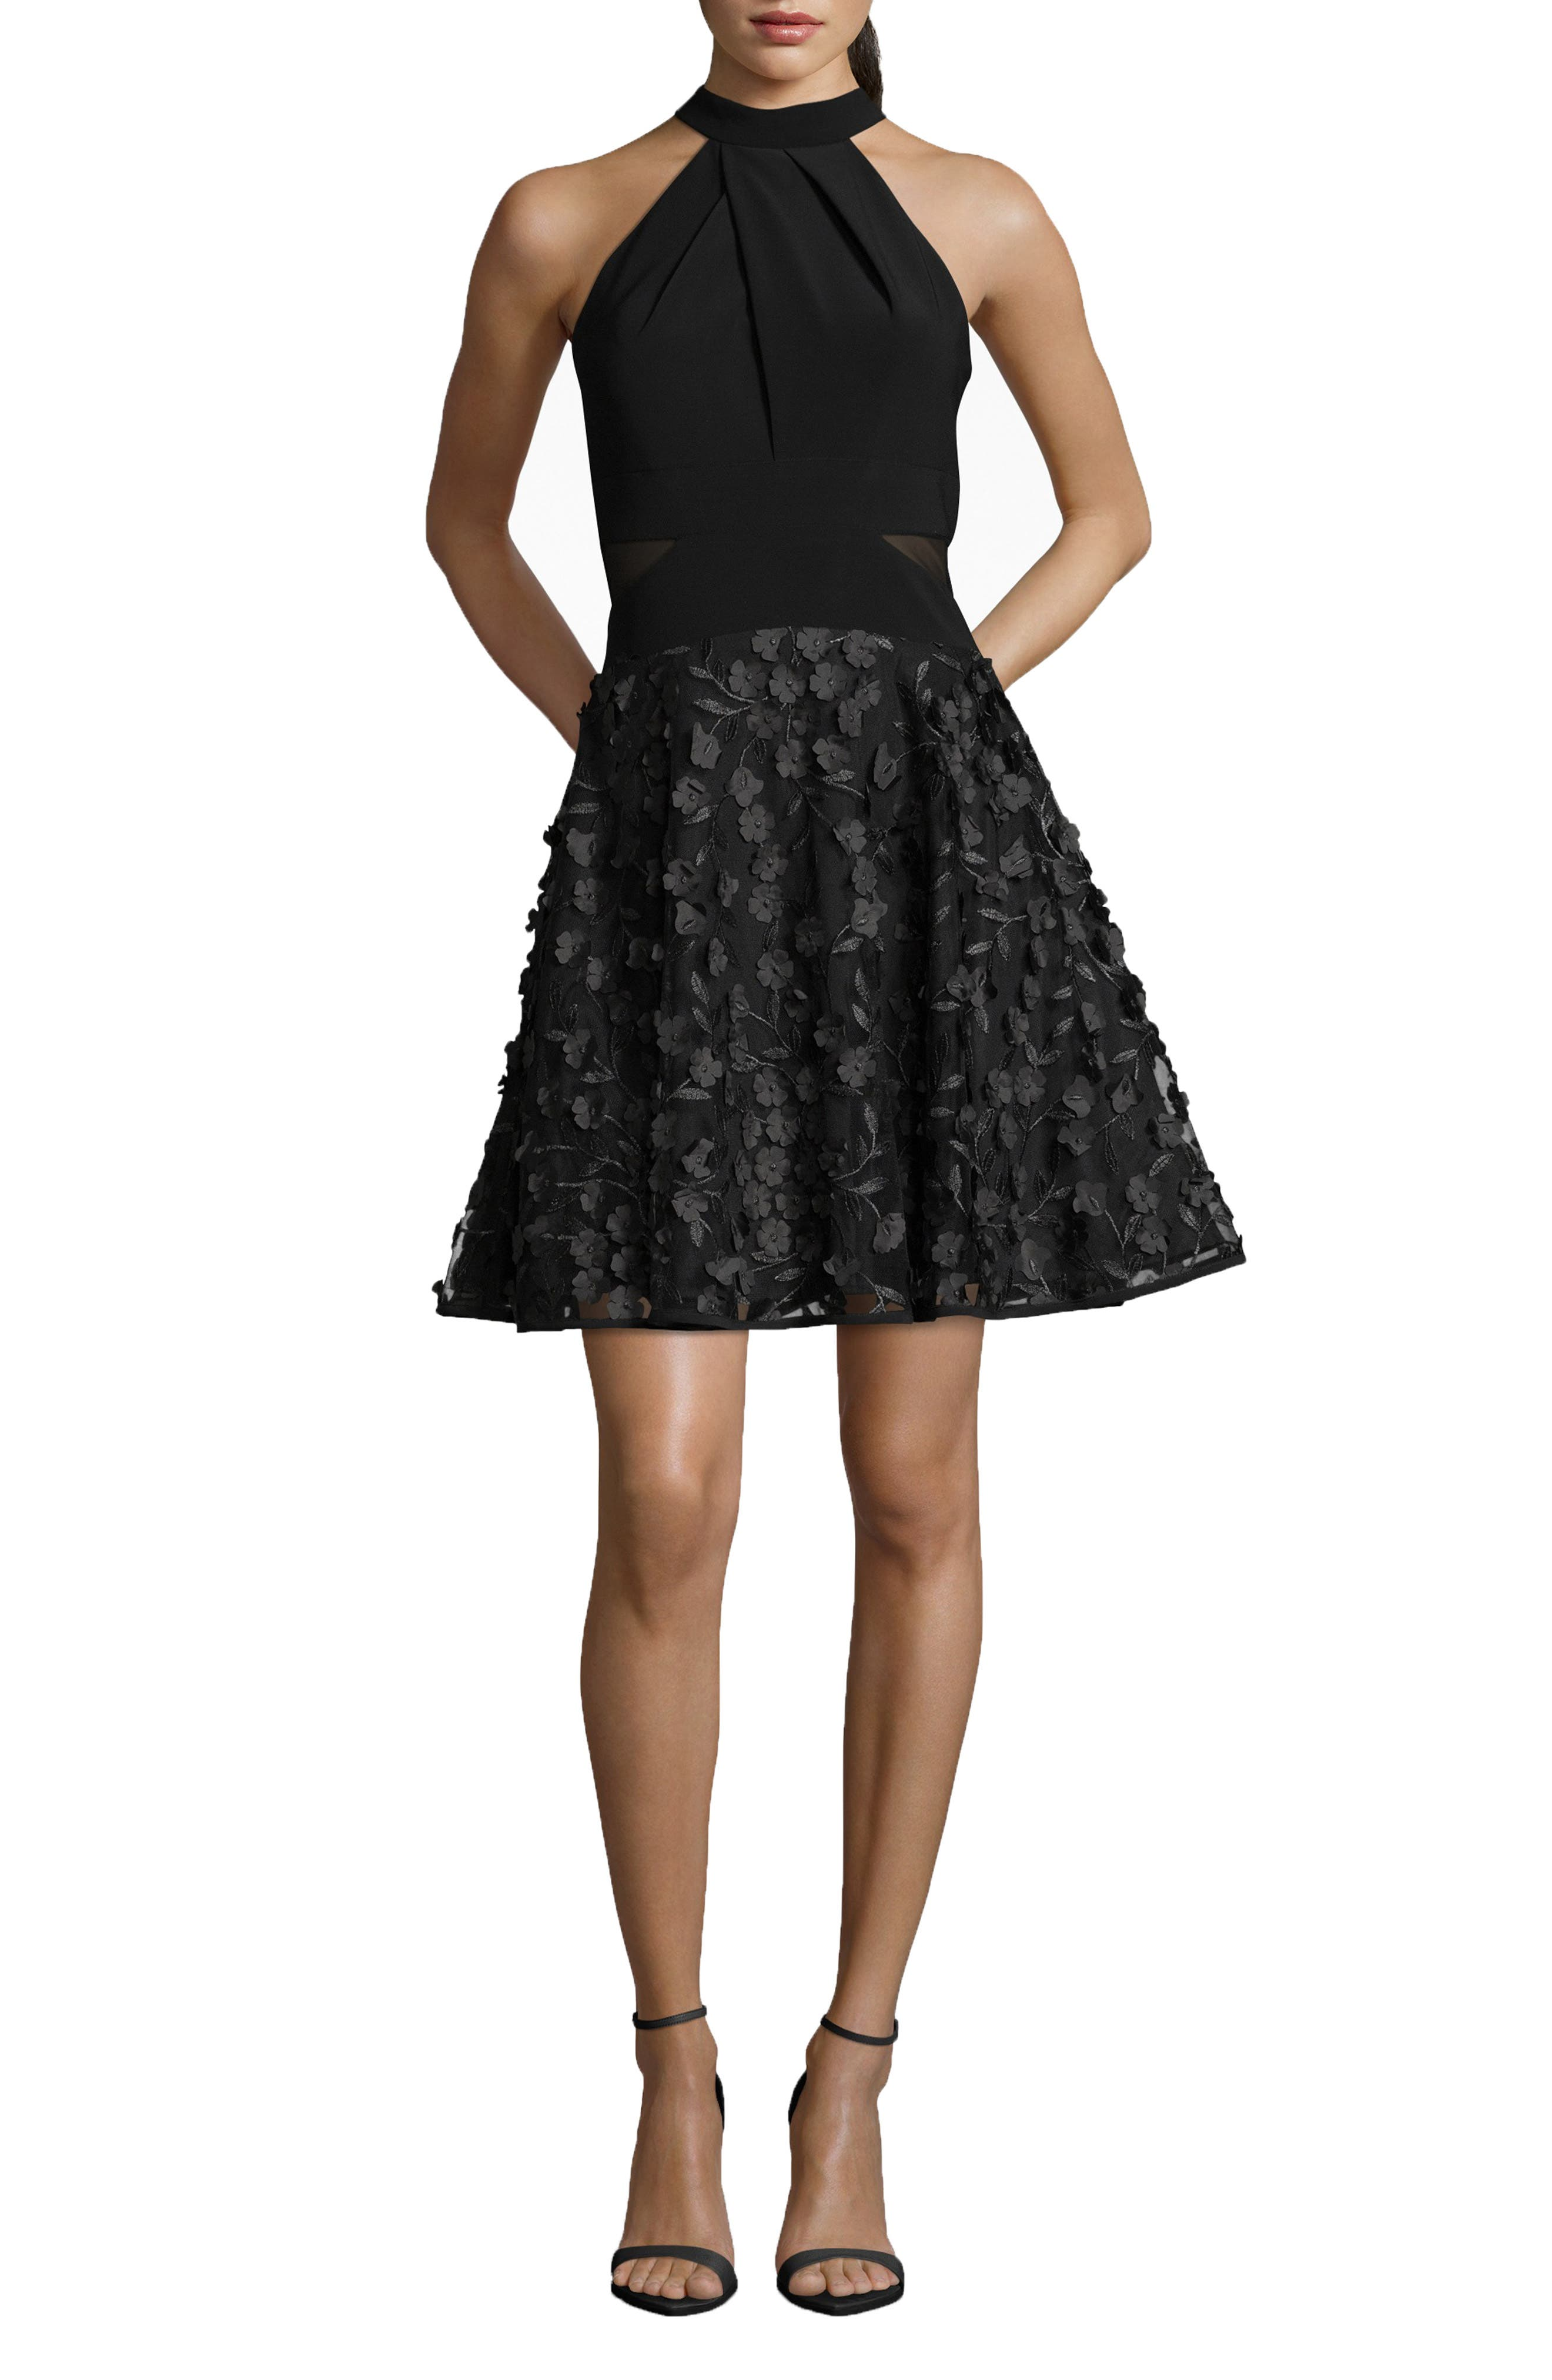 3D Floral Party Dress,                         Main,                         color, BLACK/ BLACK